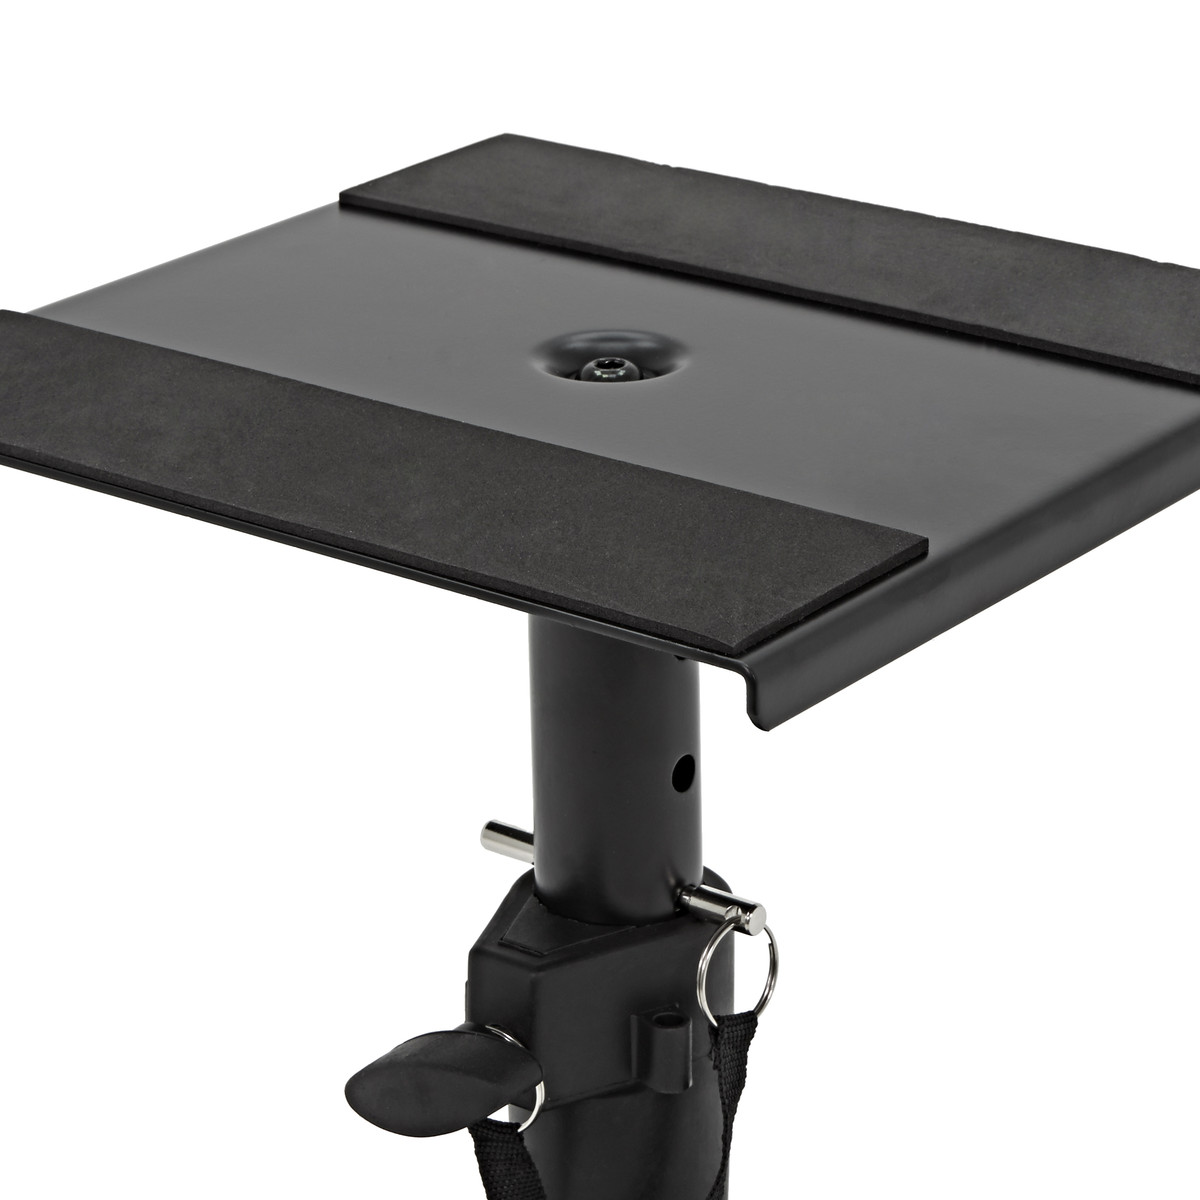 Desktop Monitor Speaker Stands by Gear4music, Pair - Box Opened at Gear4music.com